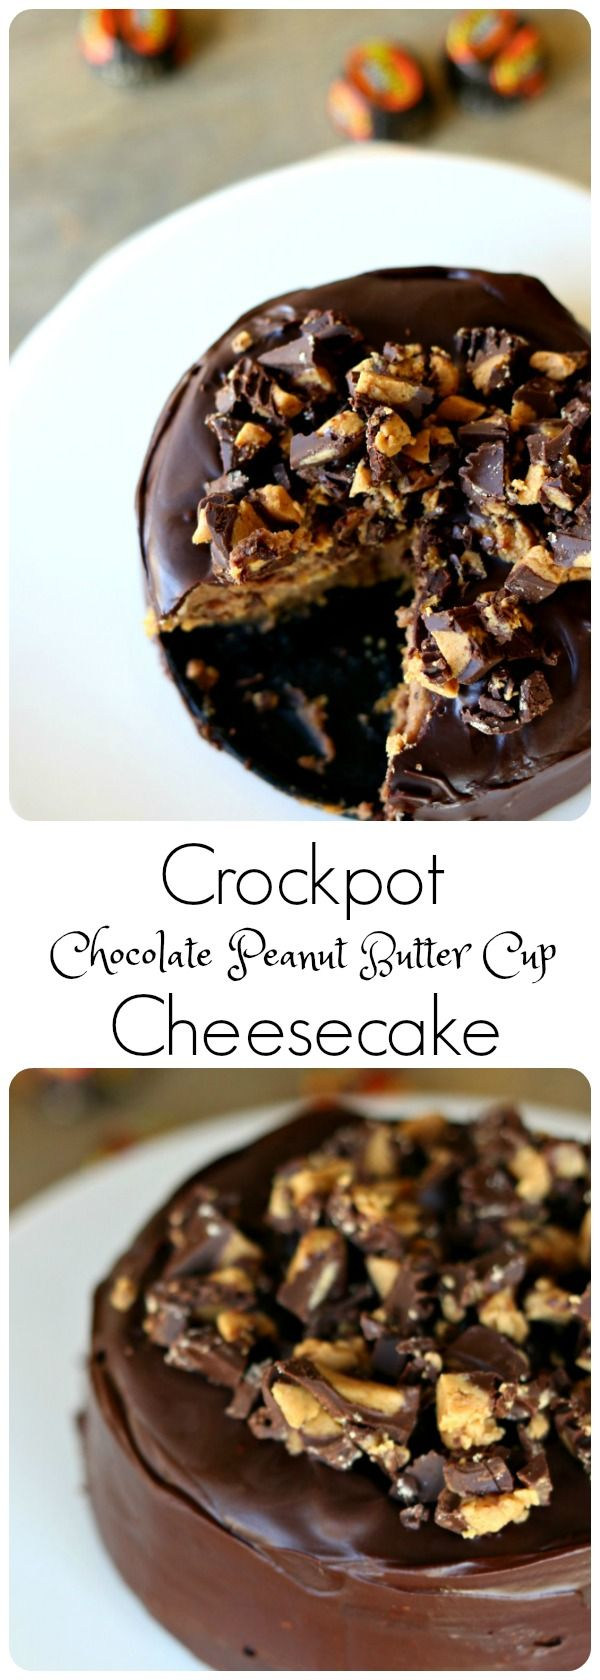 1607 best Amazing Desserts images on Pinterest | Dessert recipes ...